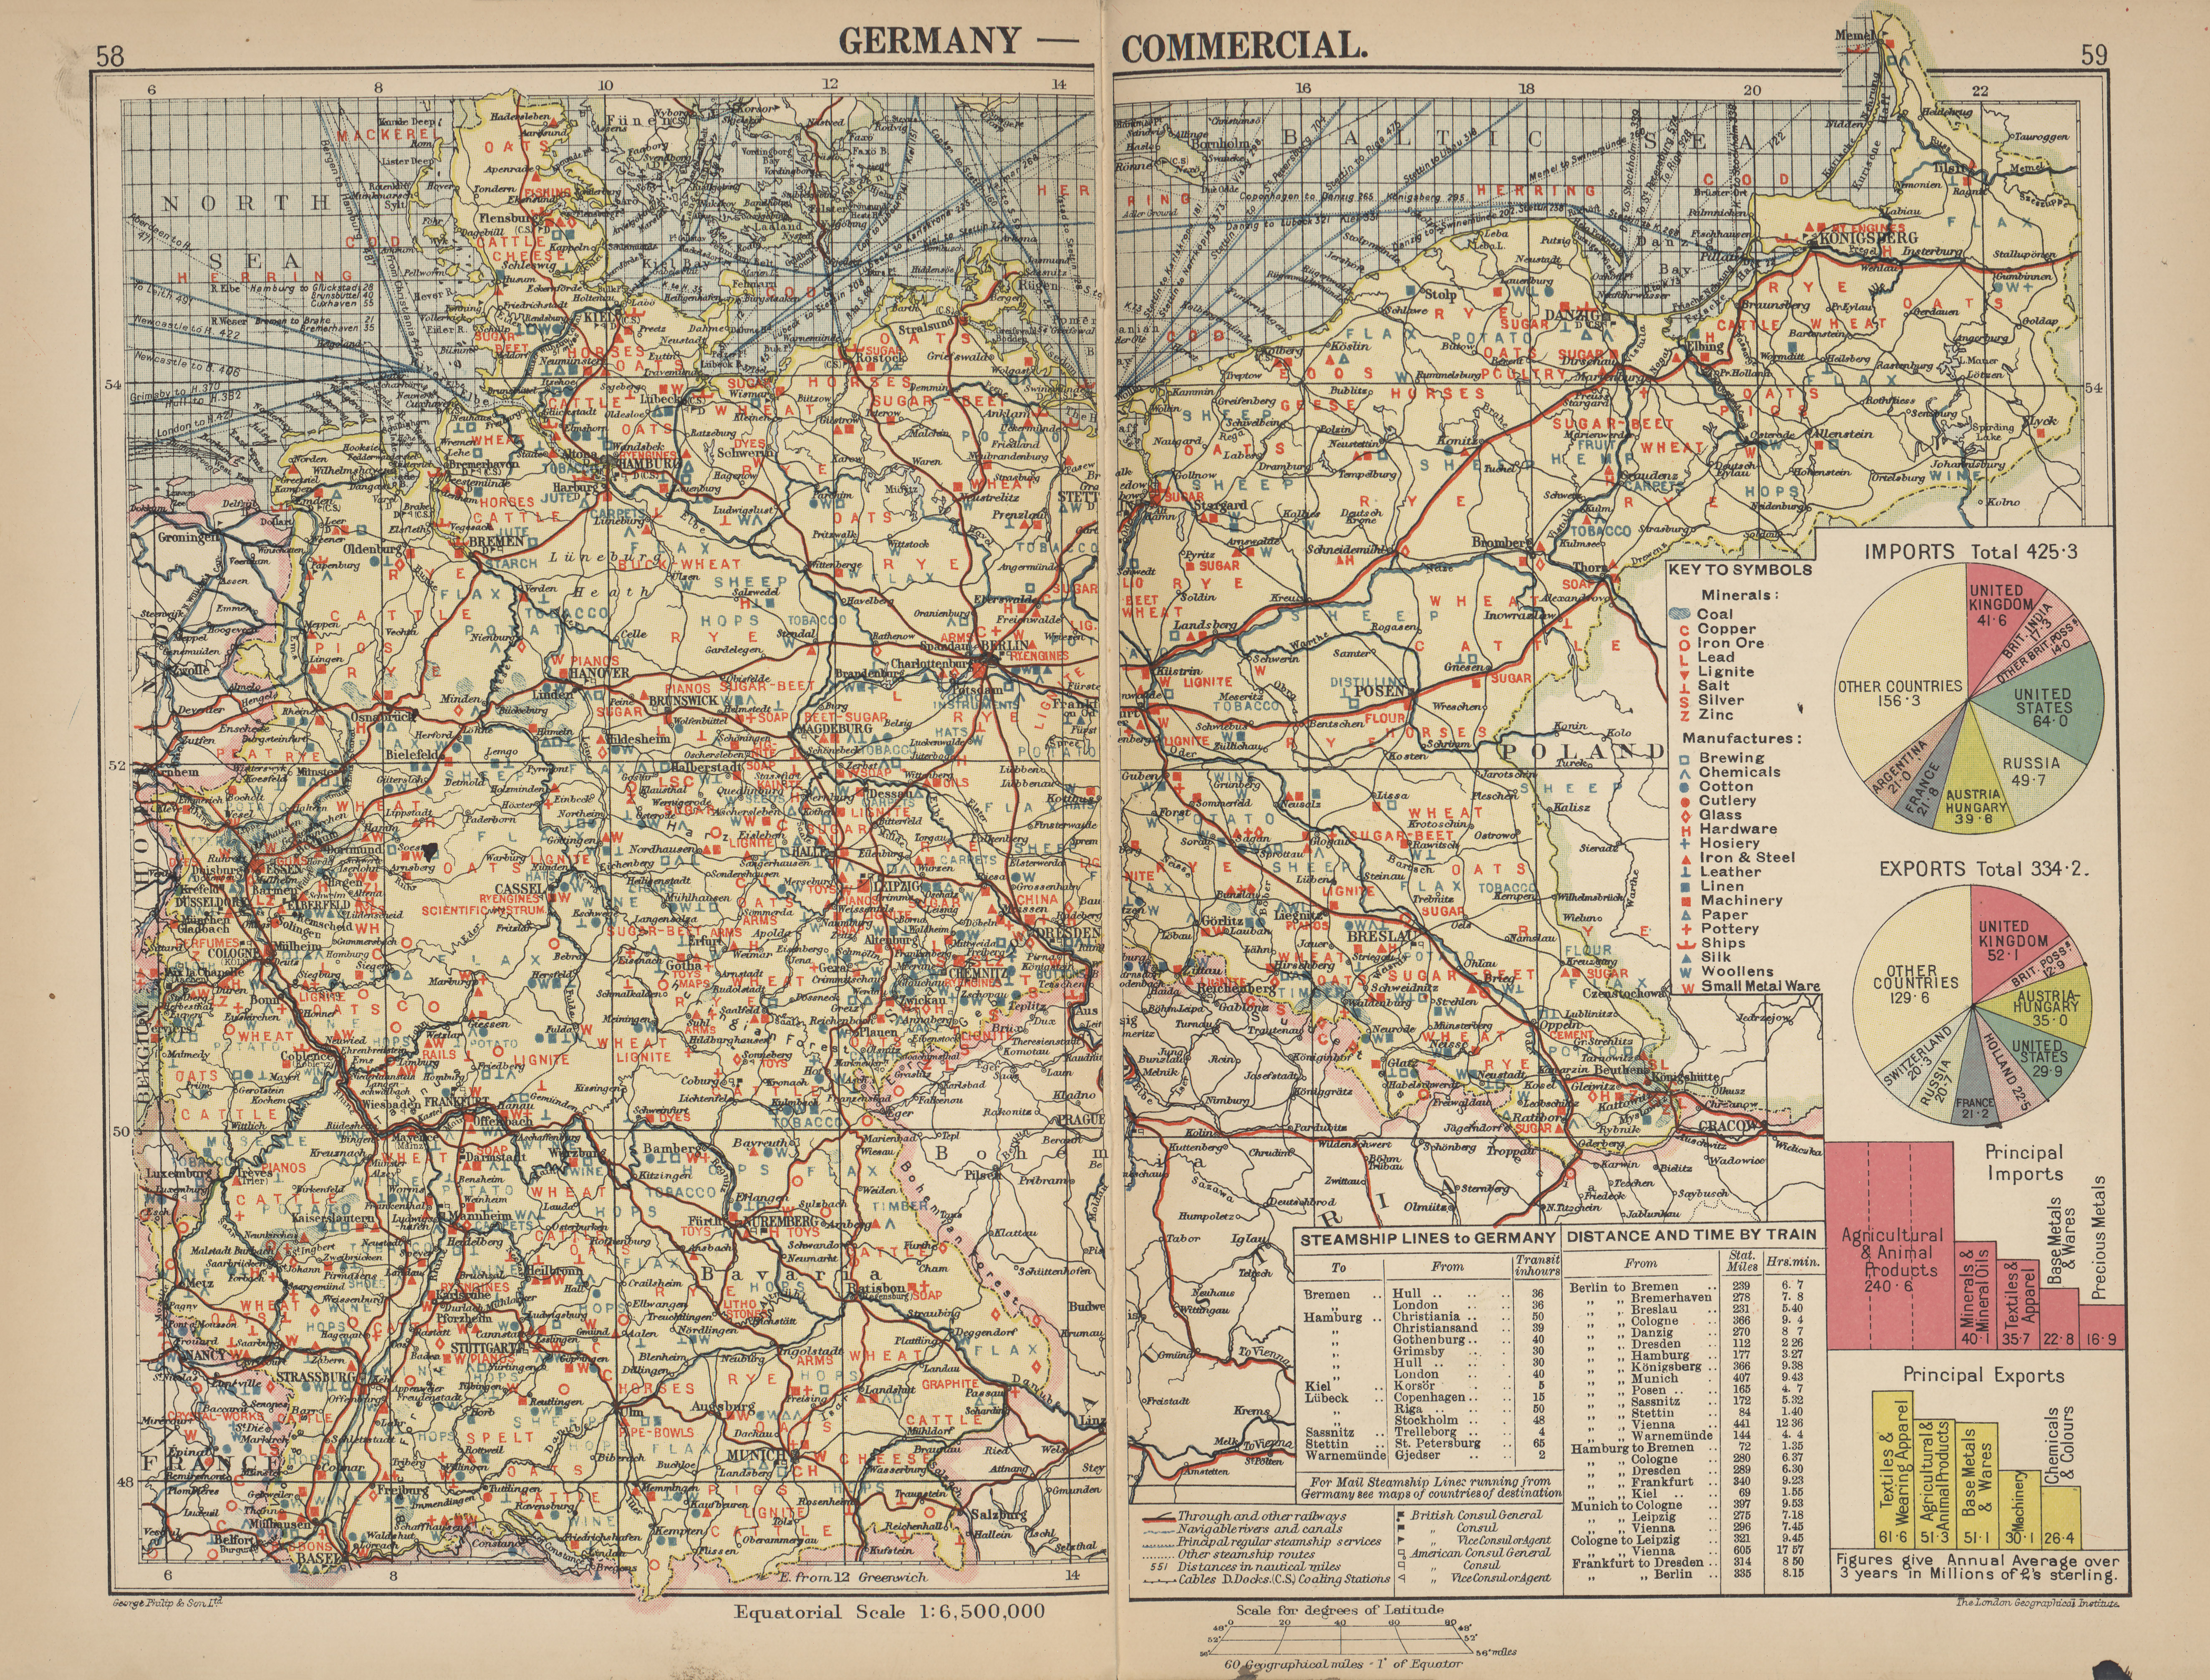 Maps from philips chamber of commerce atlas perry castaeda map germany commercial gumiabroncs Gallery